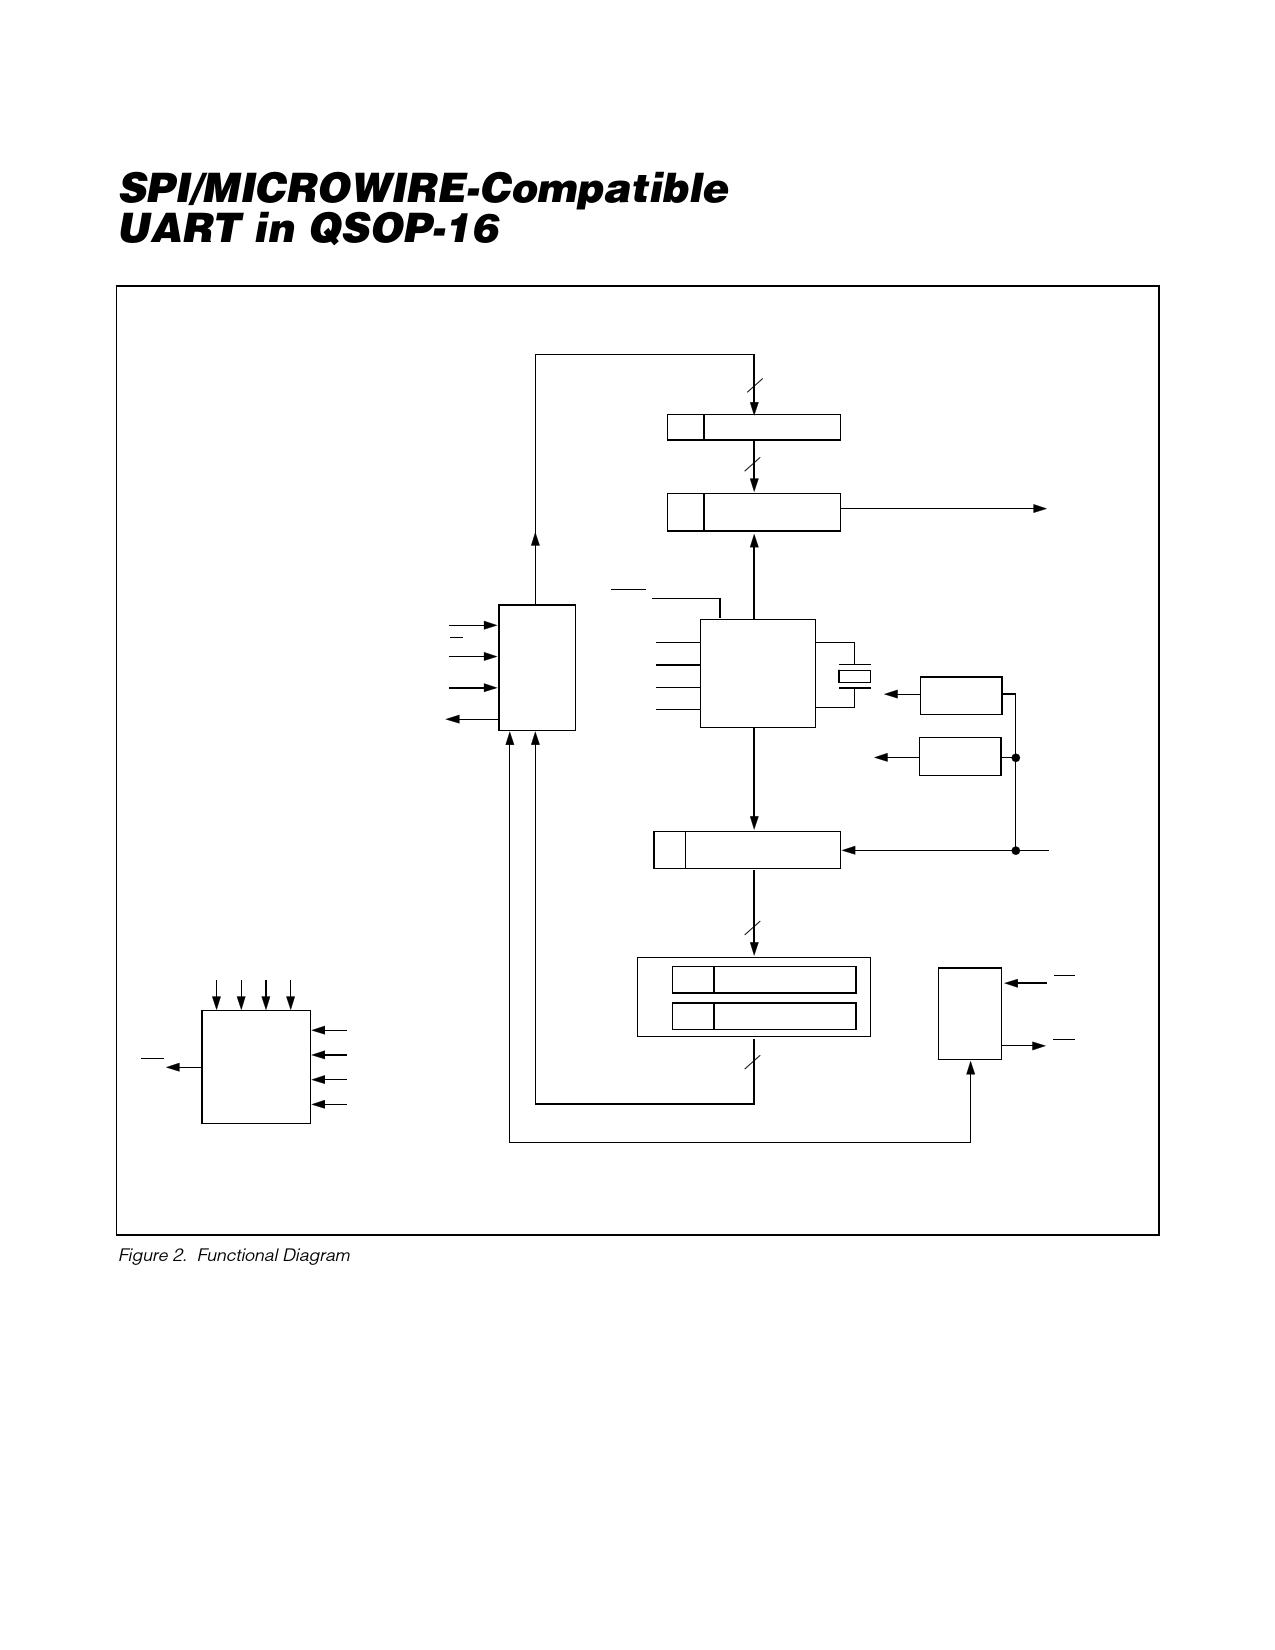 uart timing diagram levee cross section max3100 データシート pdf spi microwire compatible in qsop 16